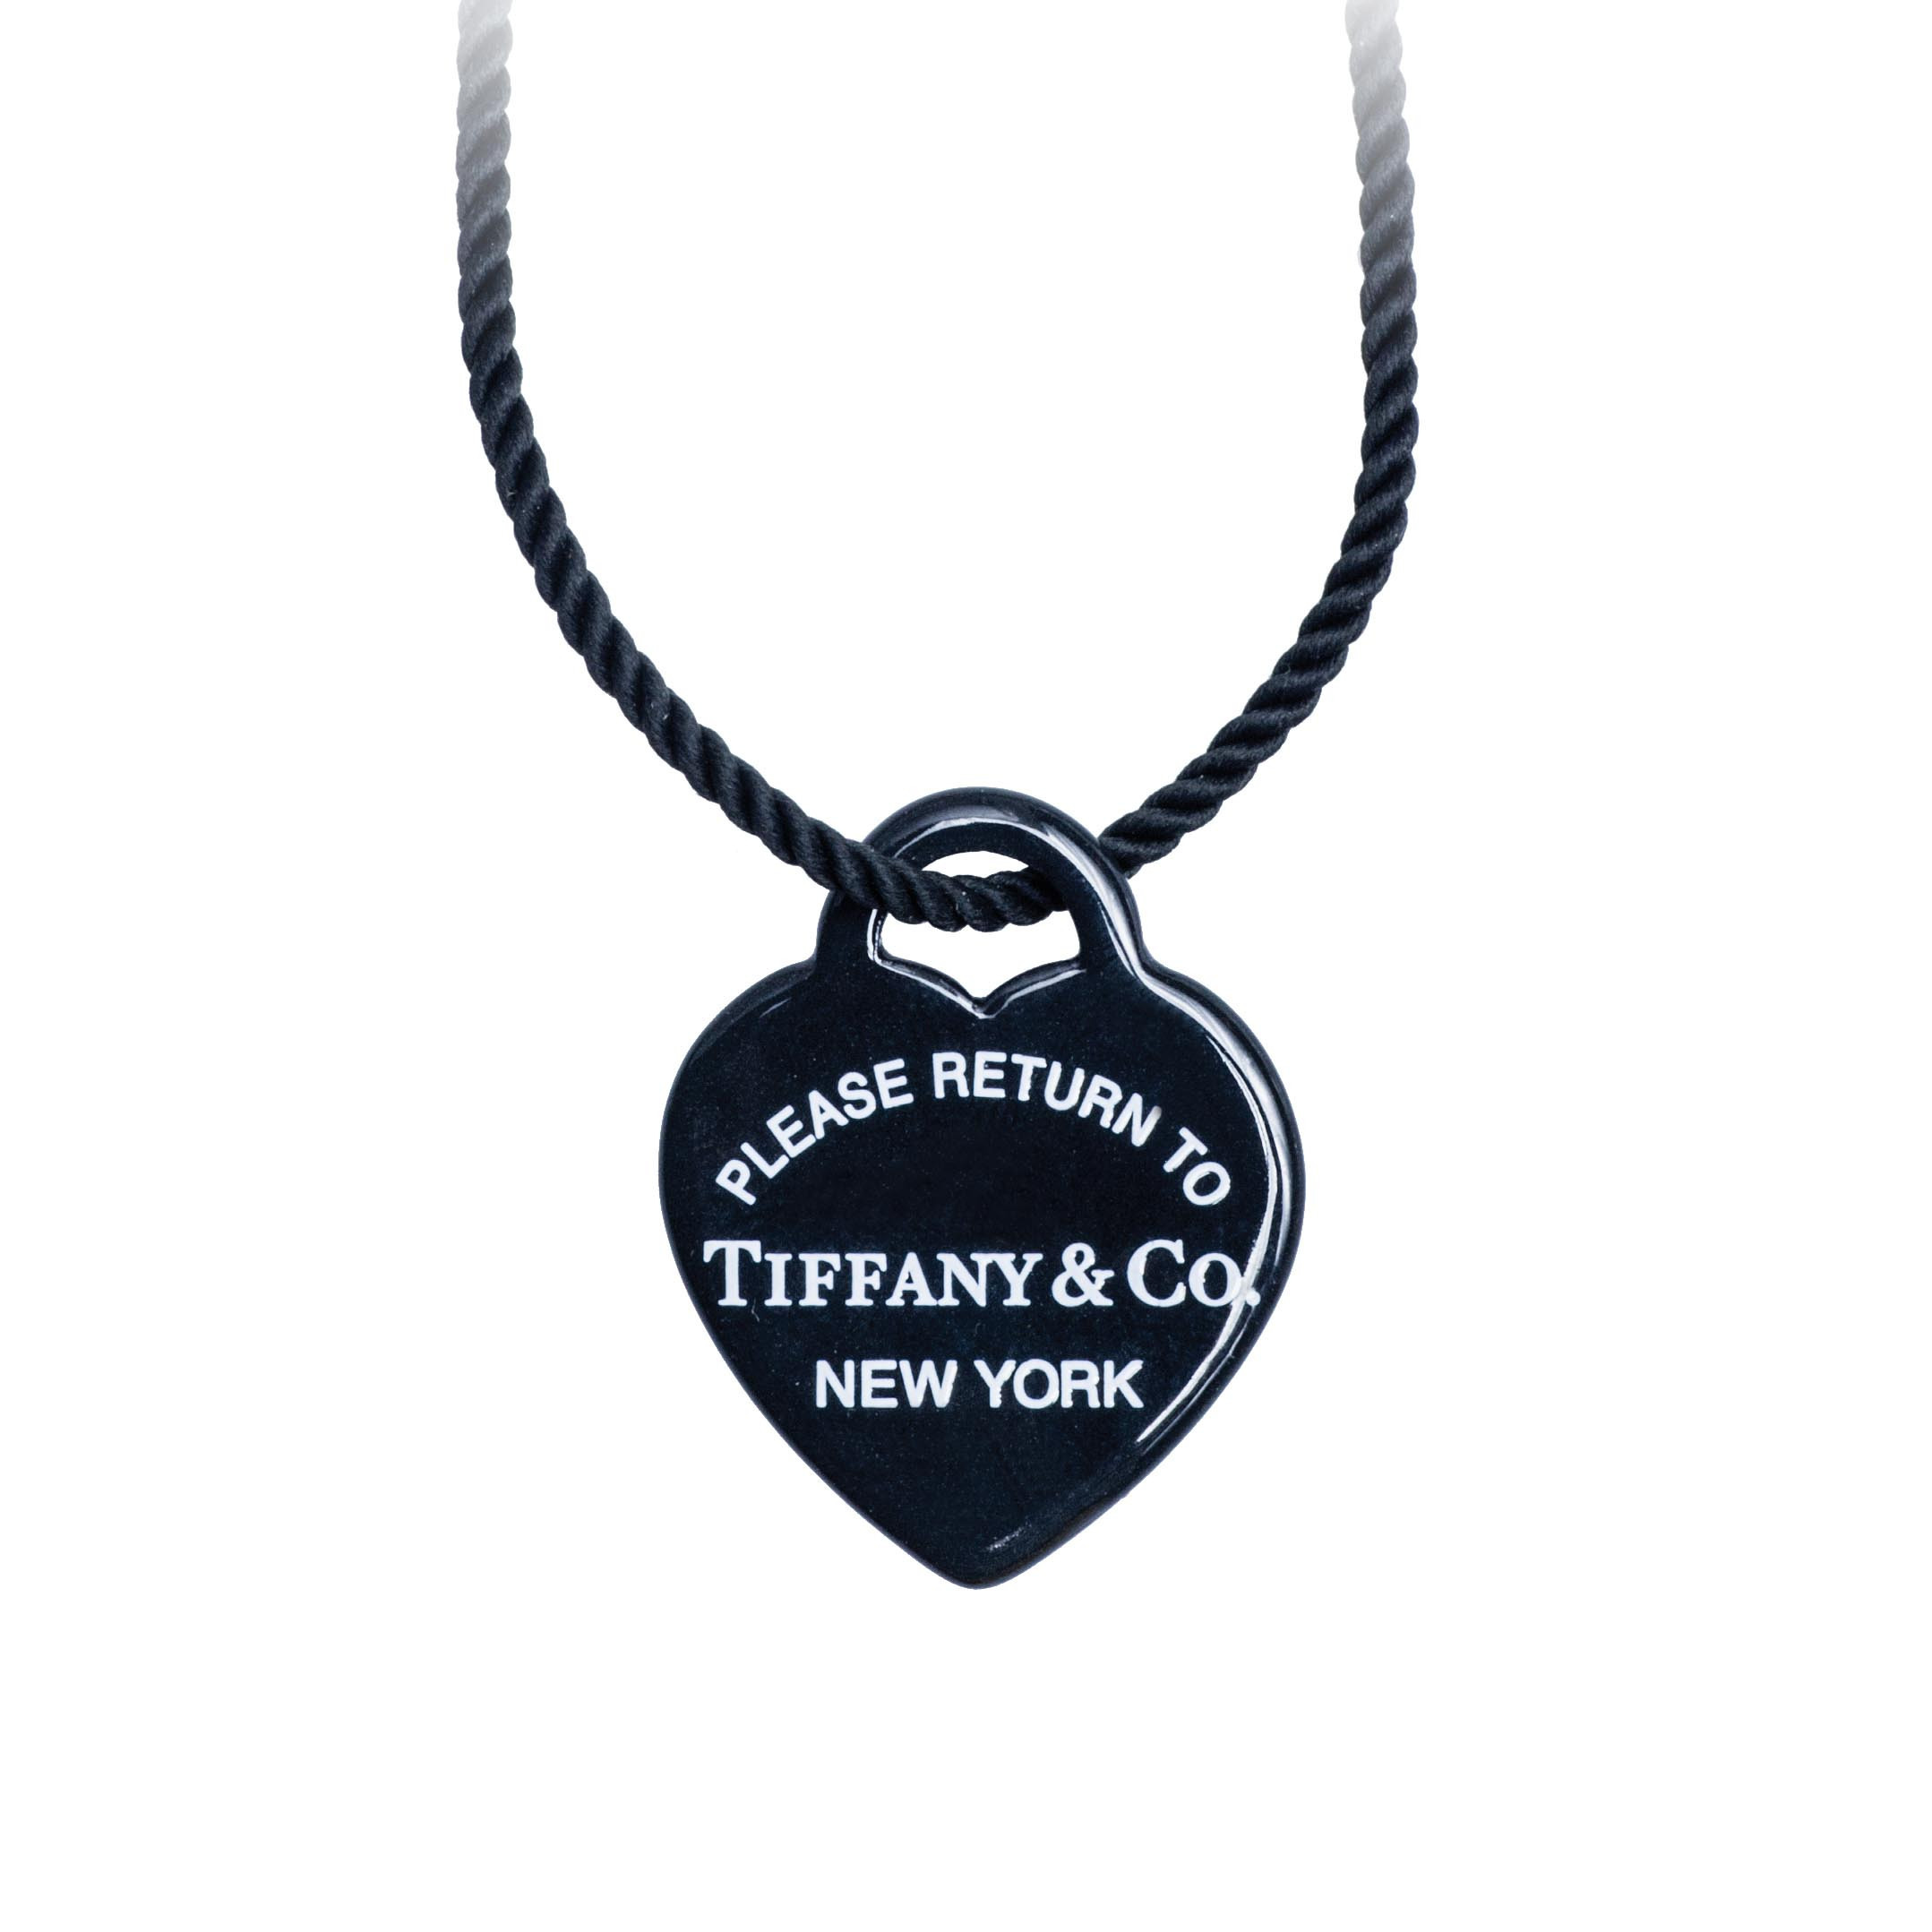 Vintage Tiffany Co Please Return To Tiffany Heart Tag Charm Necklace